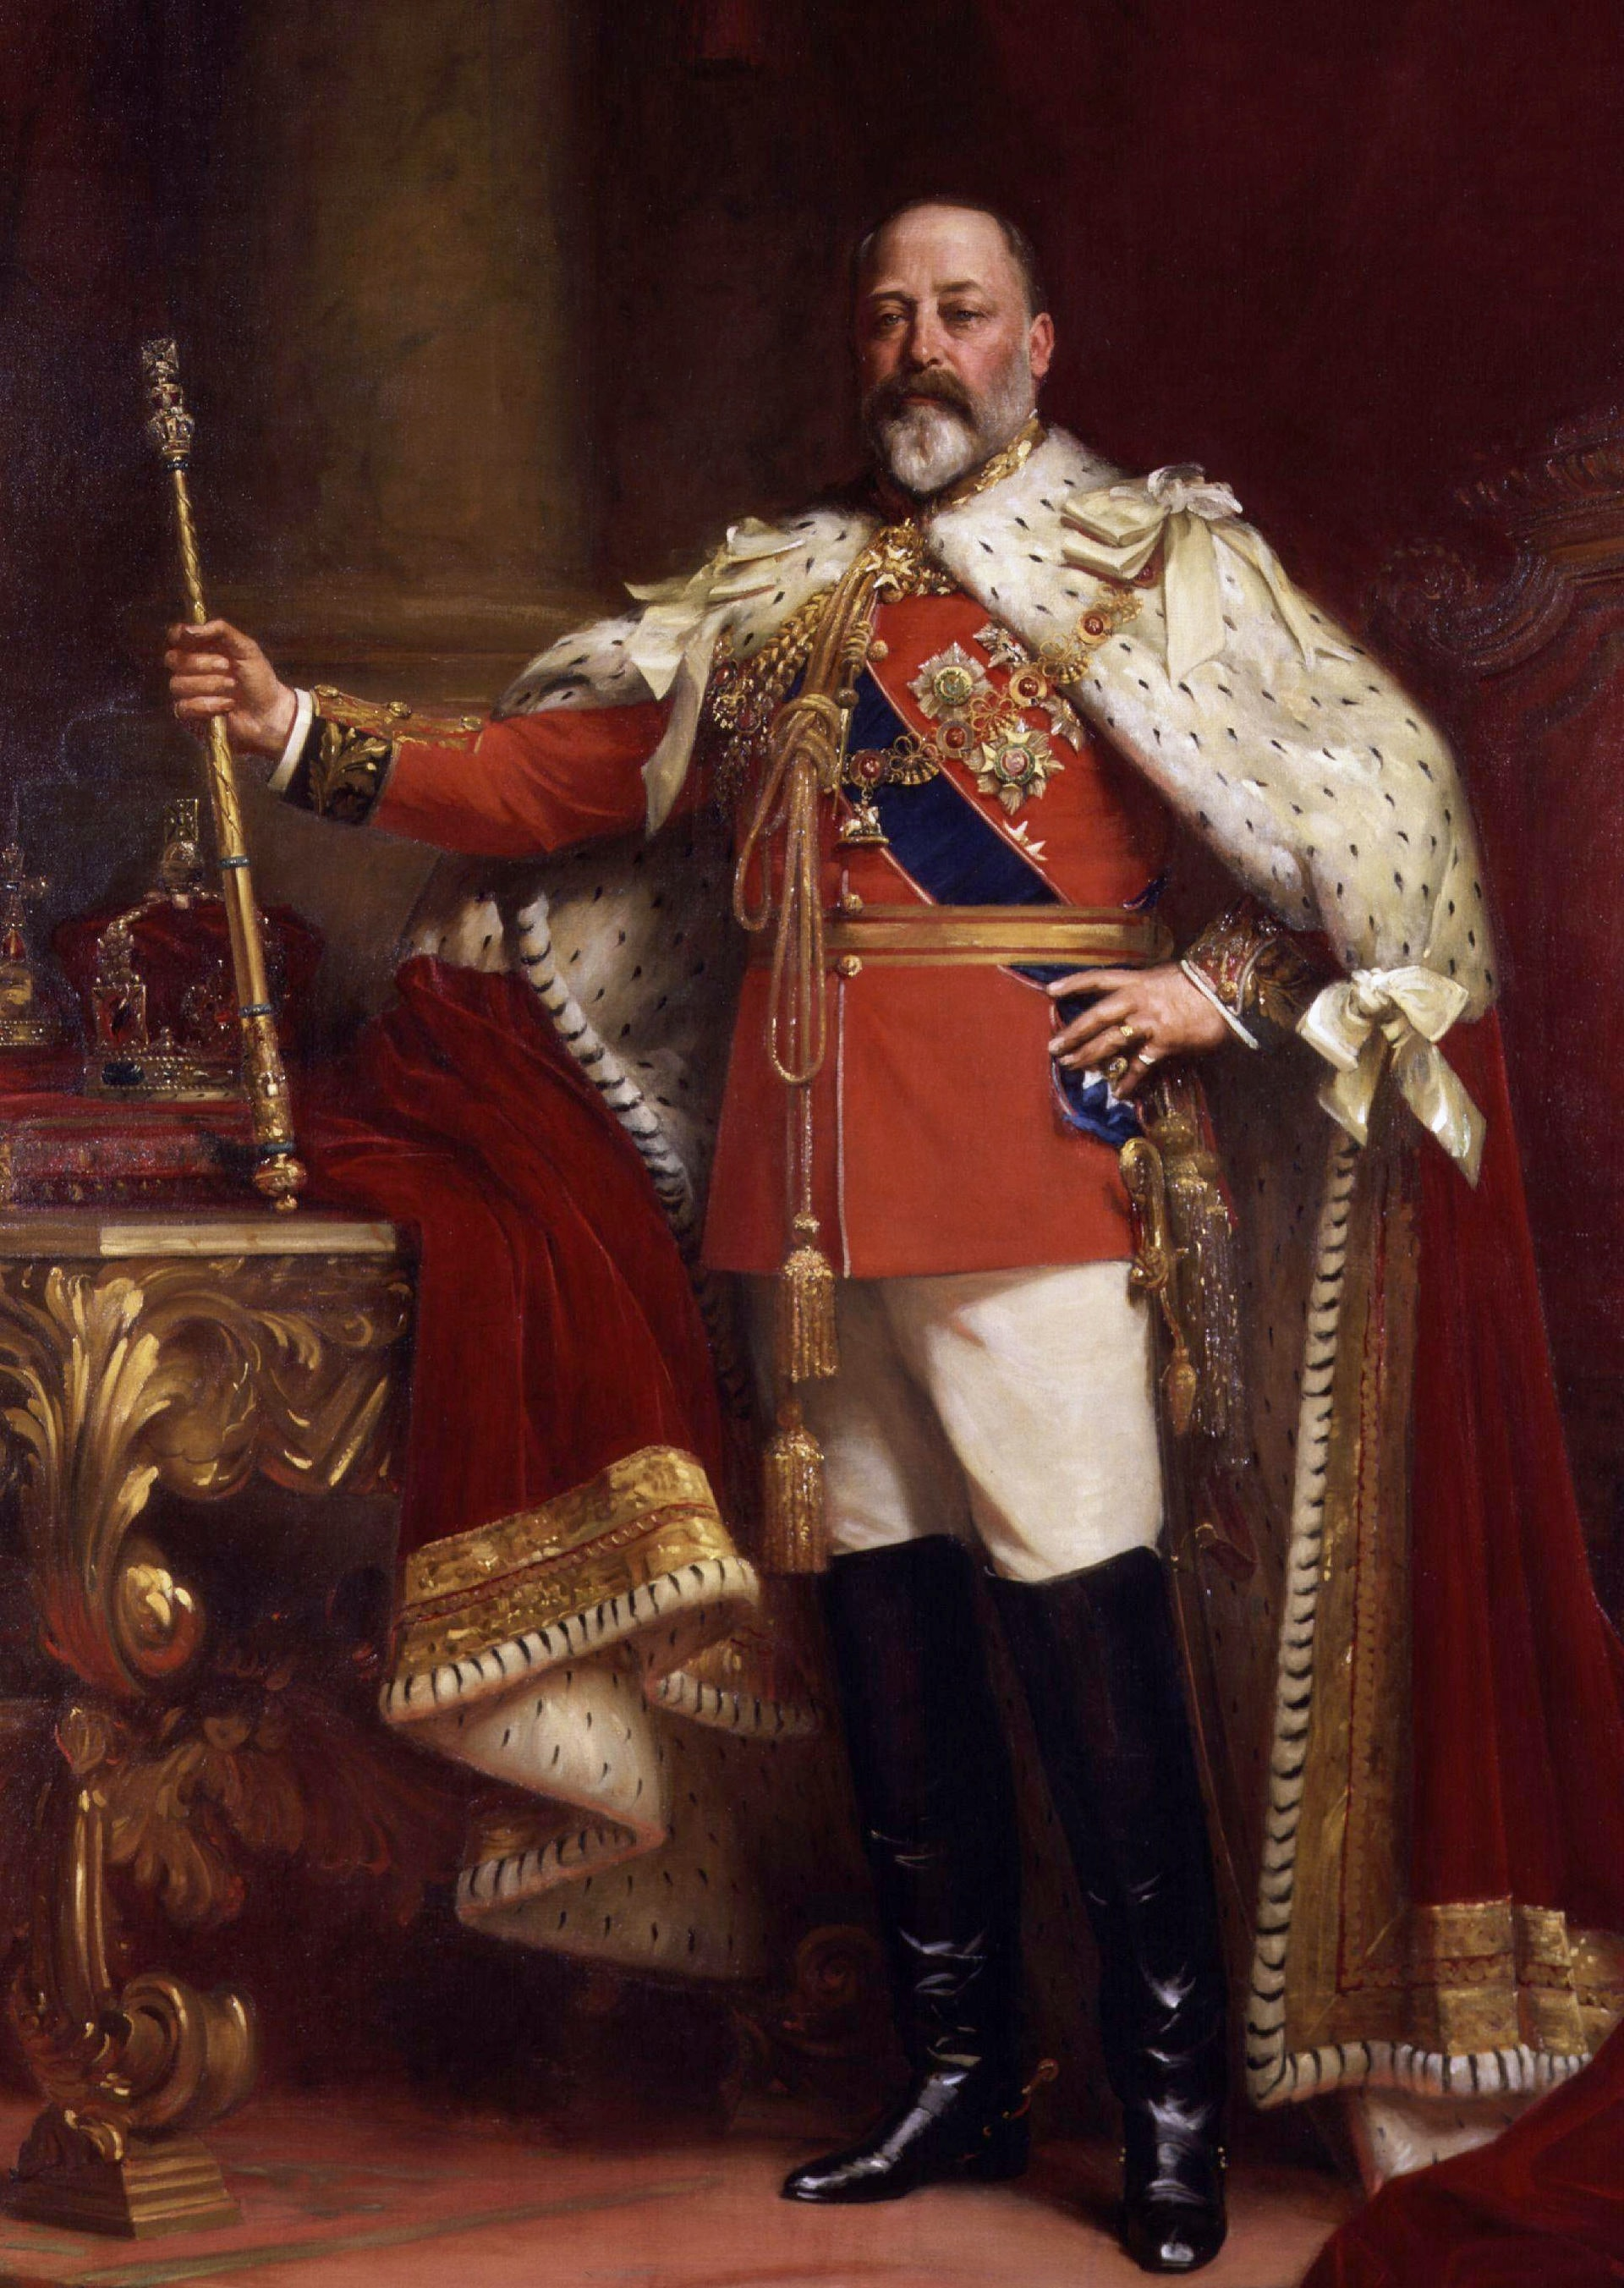 coronation robes edward vii White Tie, Black Tie, And Watches: Is It Ever Okay To Wear A Watch With A Tux? White Tie, Black Tie, And Watches: Is It Ever Okay To Wear A Watch With A Tux? Edward VII in coronation robes